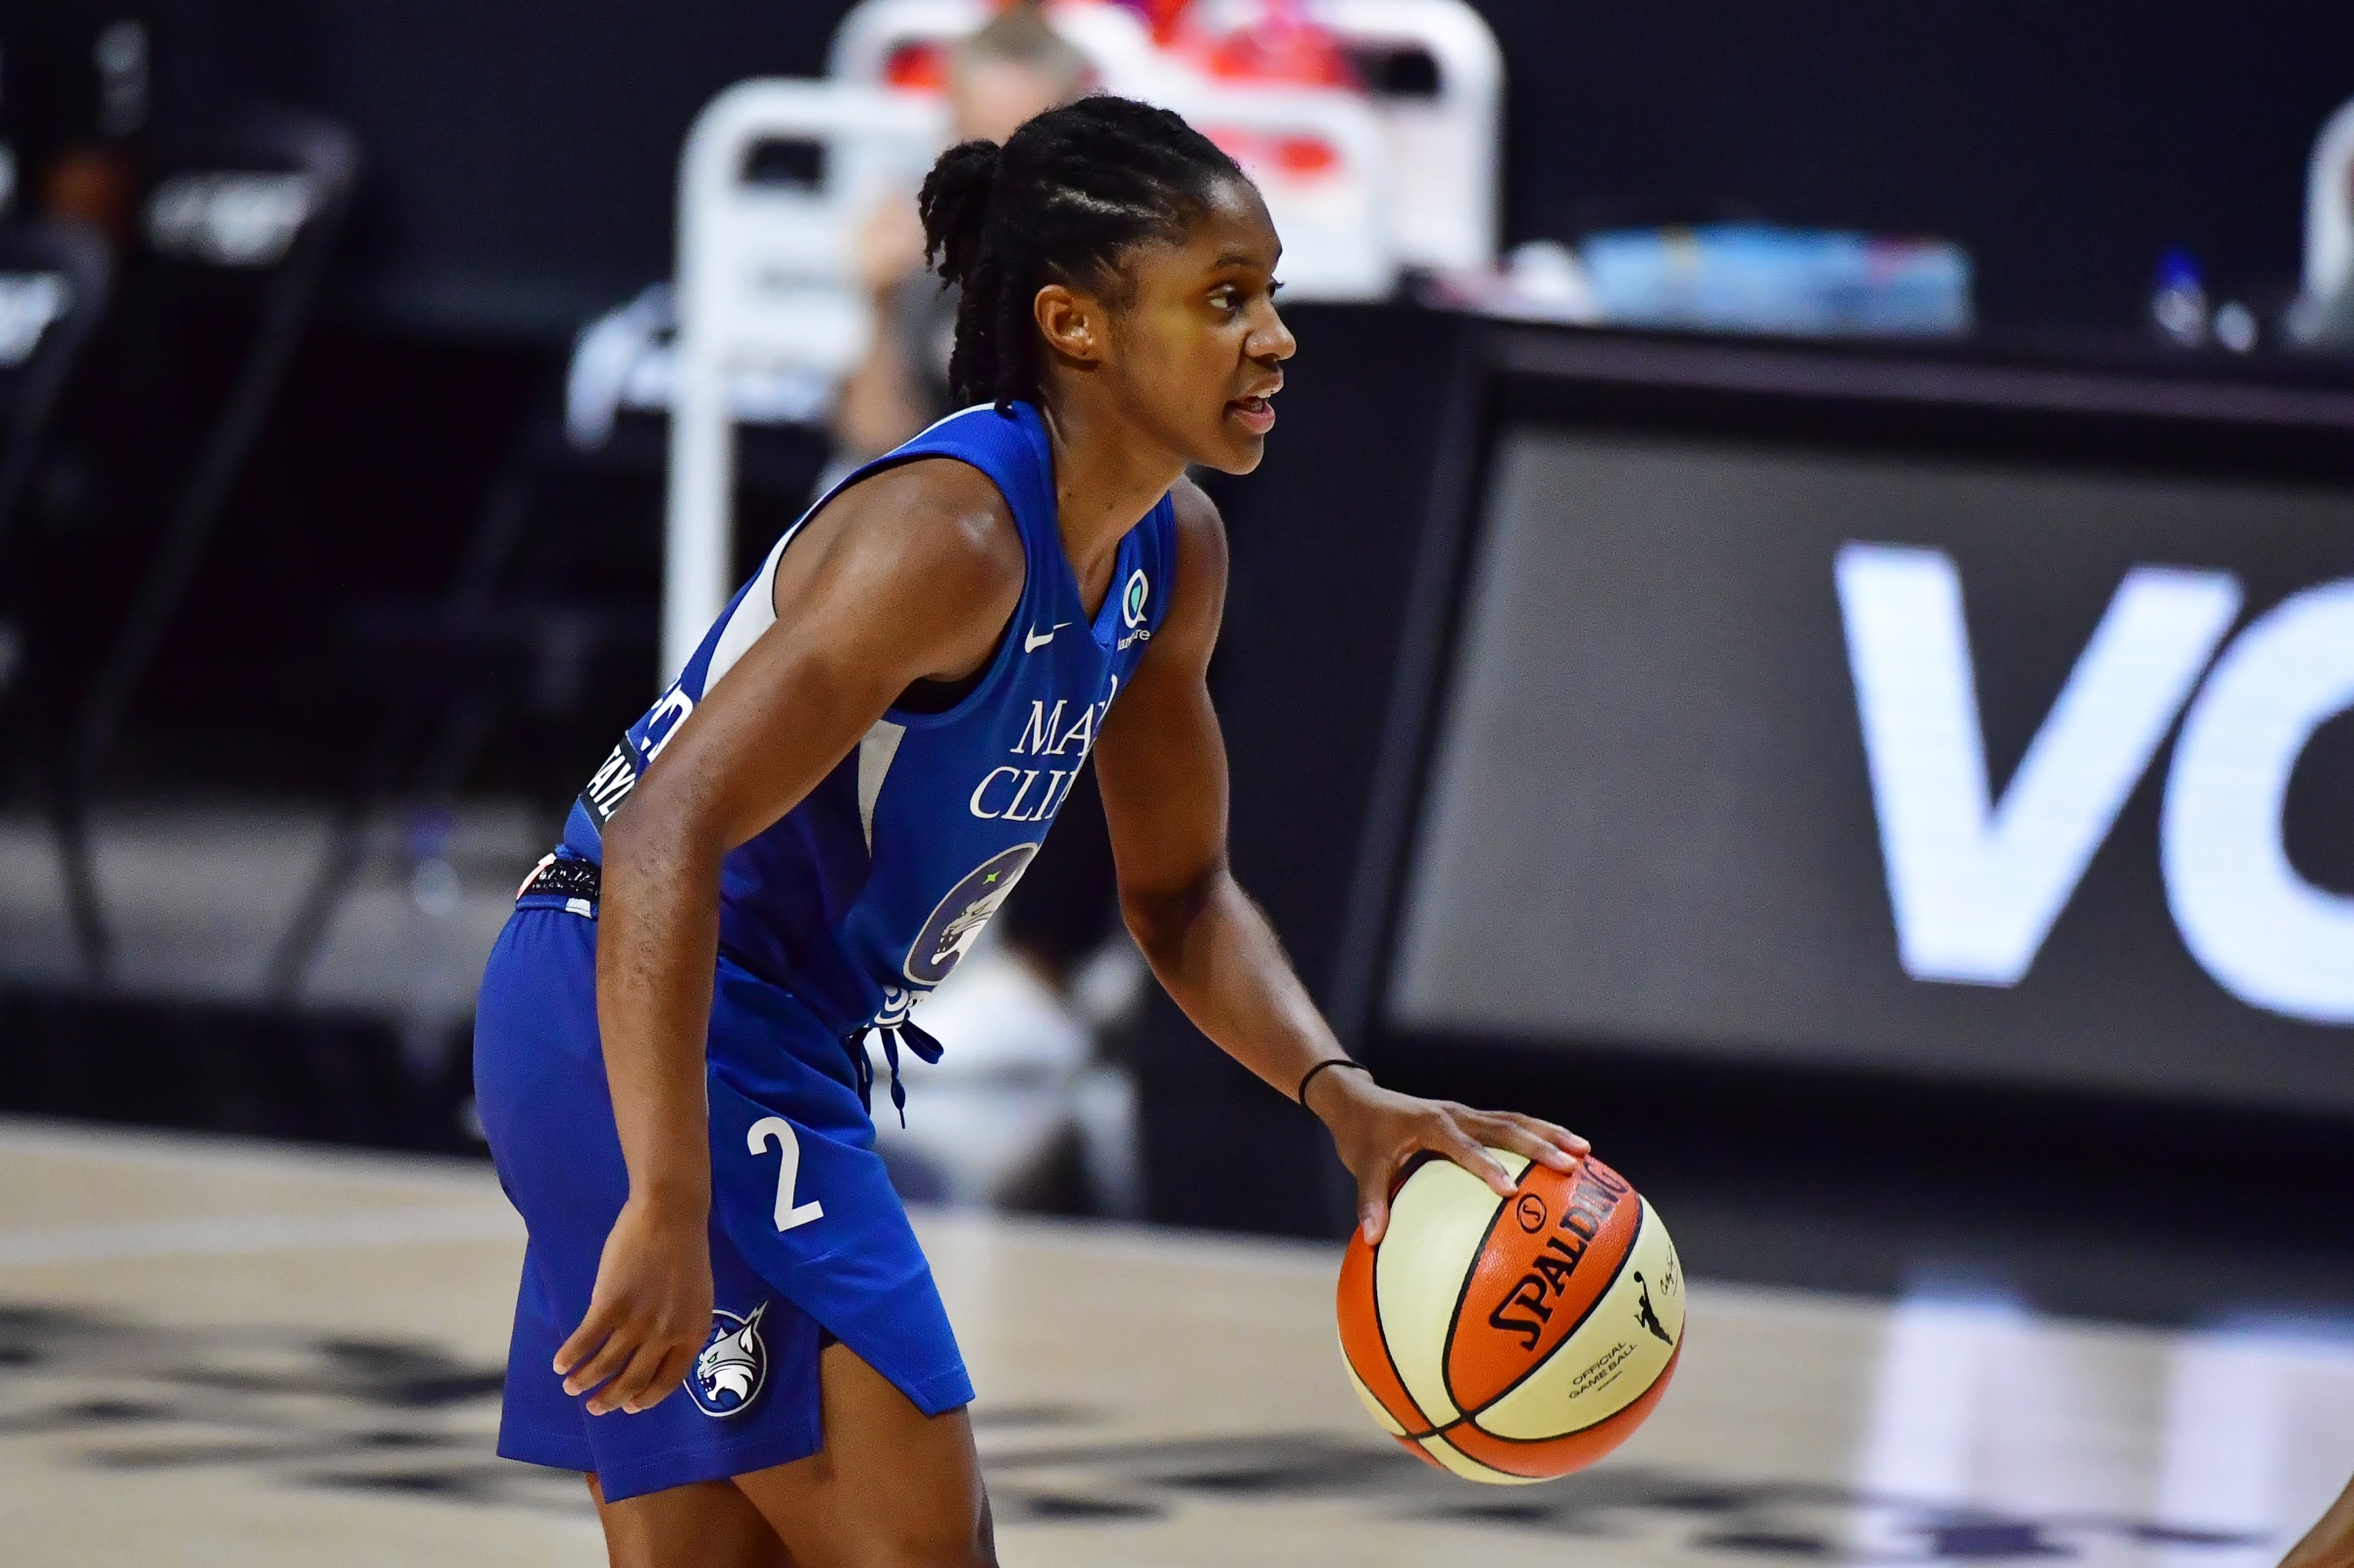 Crystal Dangerfield #2 of the Minnesota Lynx dribbles during the second half against the Phoenix Mercury in Game One of their Second Round playoff at Feld Entertainment Center on September 17, 2020 in Palmetto, Florida.